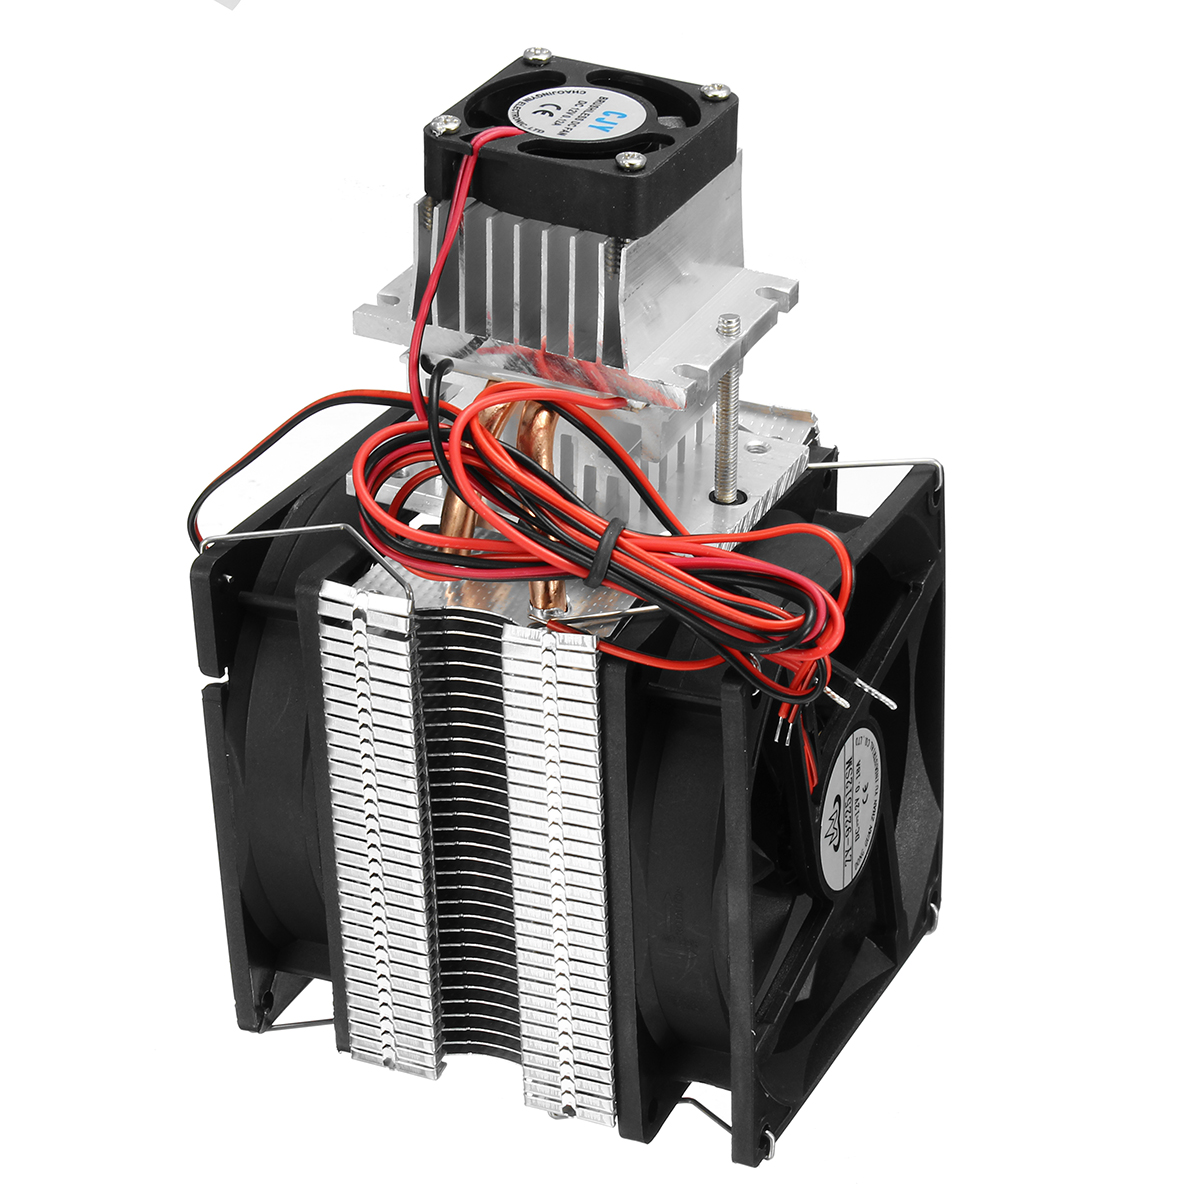 Details about 12V Thermoelectric Peltier Refrigeration DIY Water Cooling  System Cooler 80W